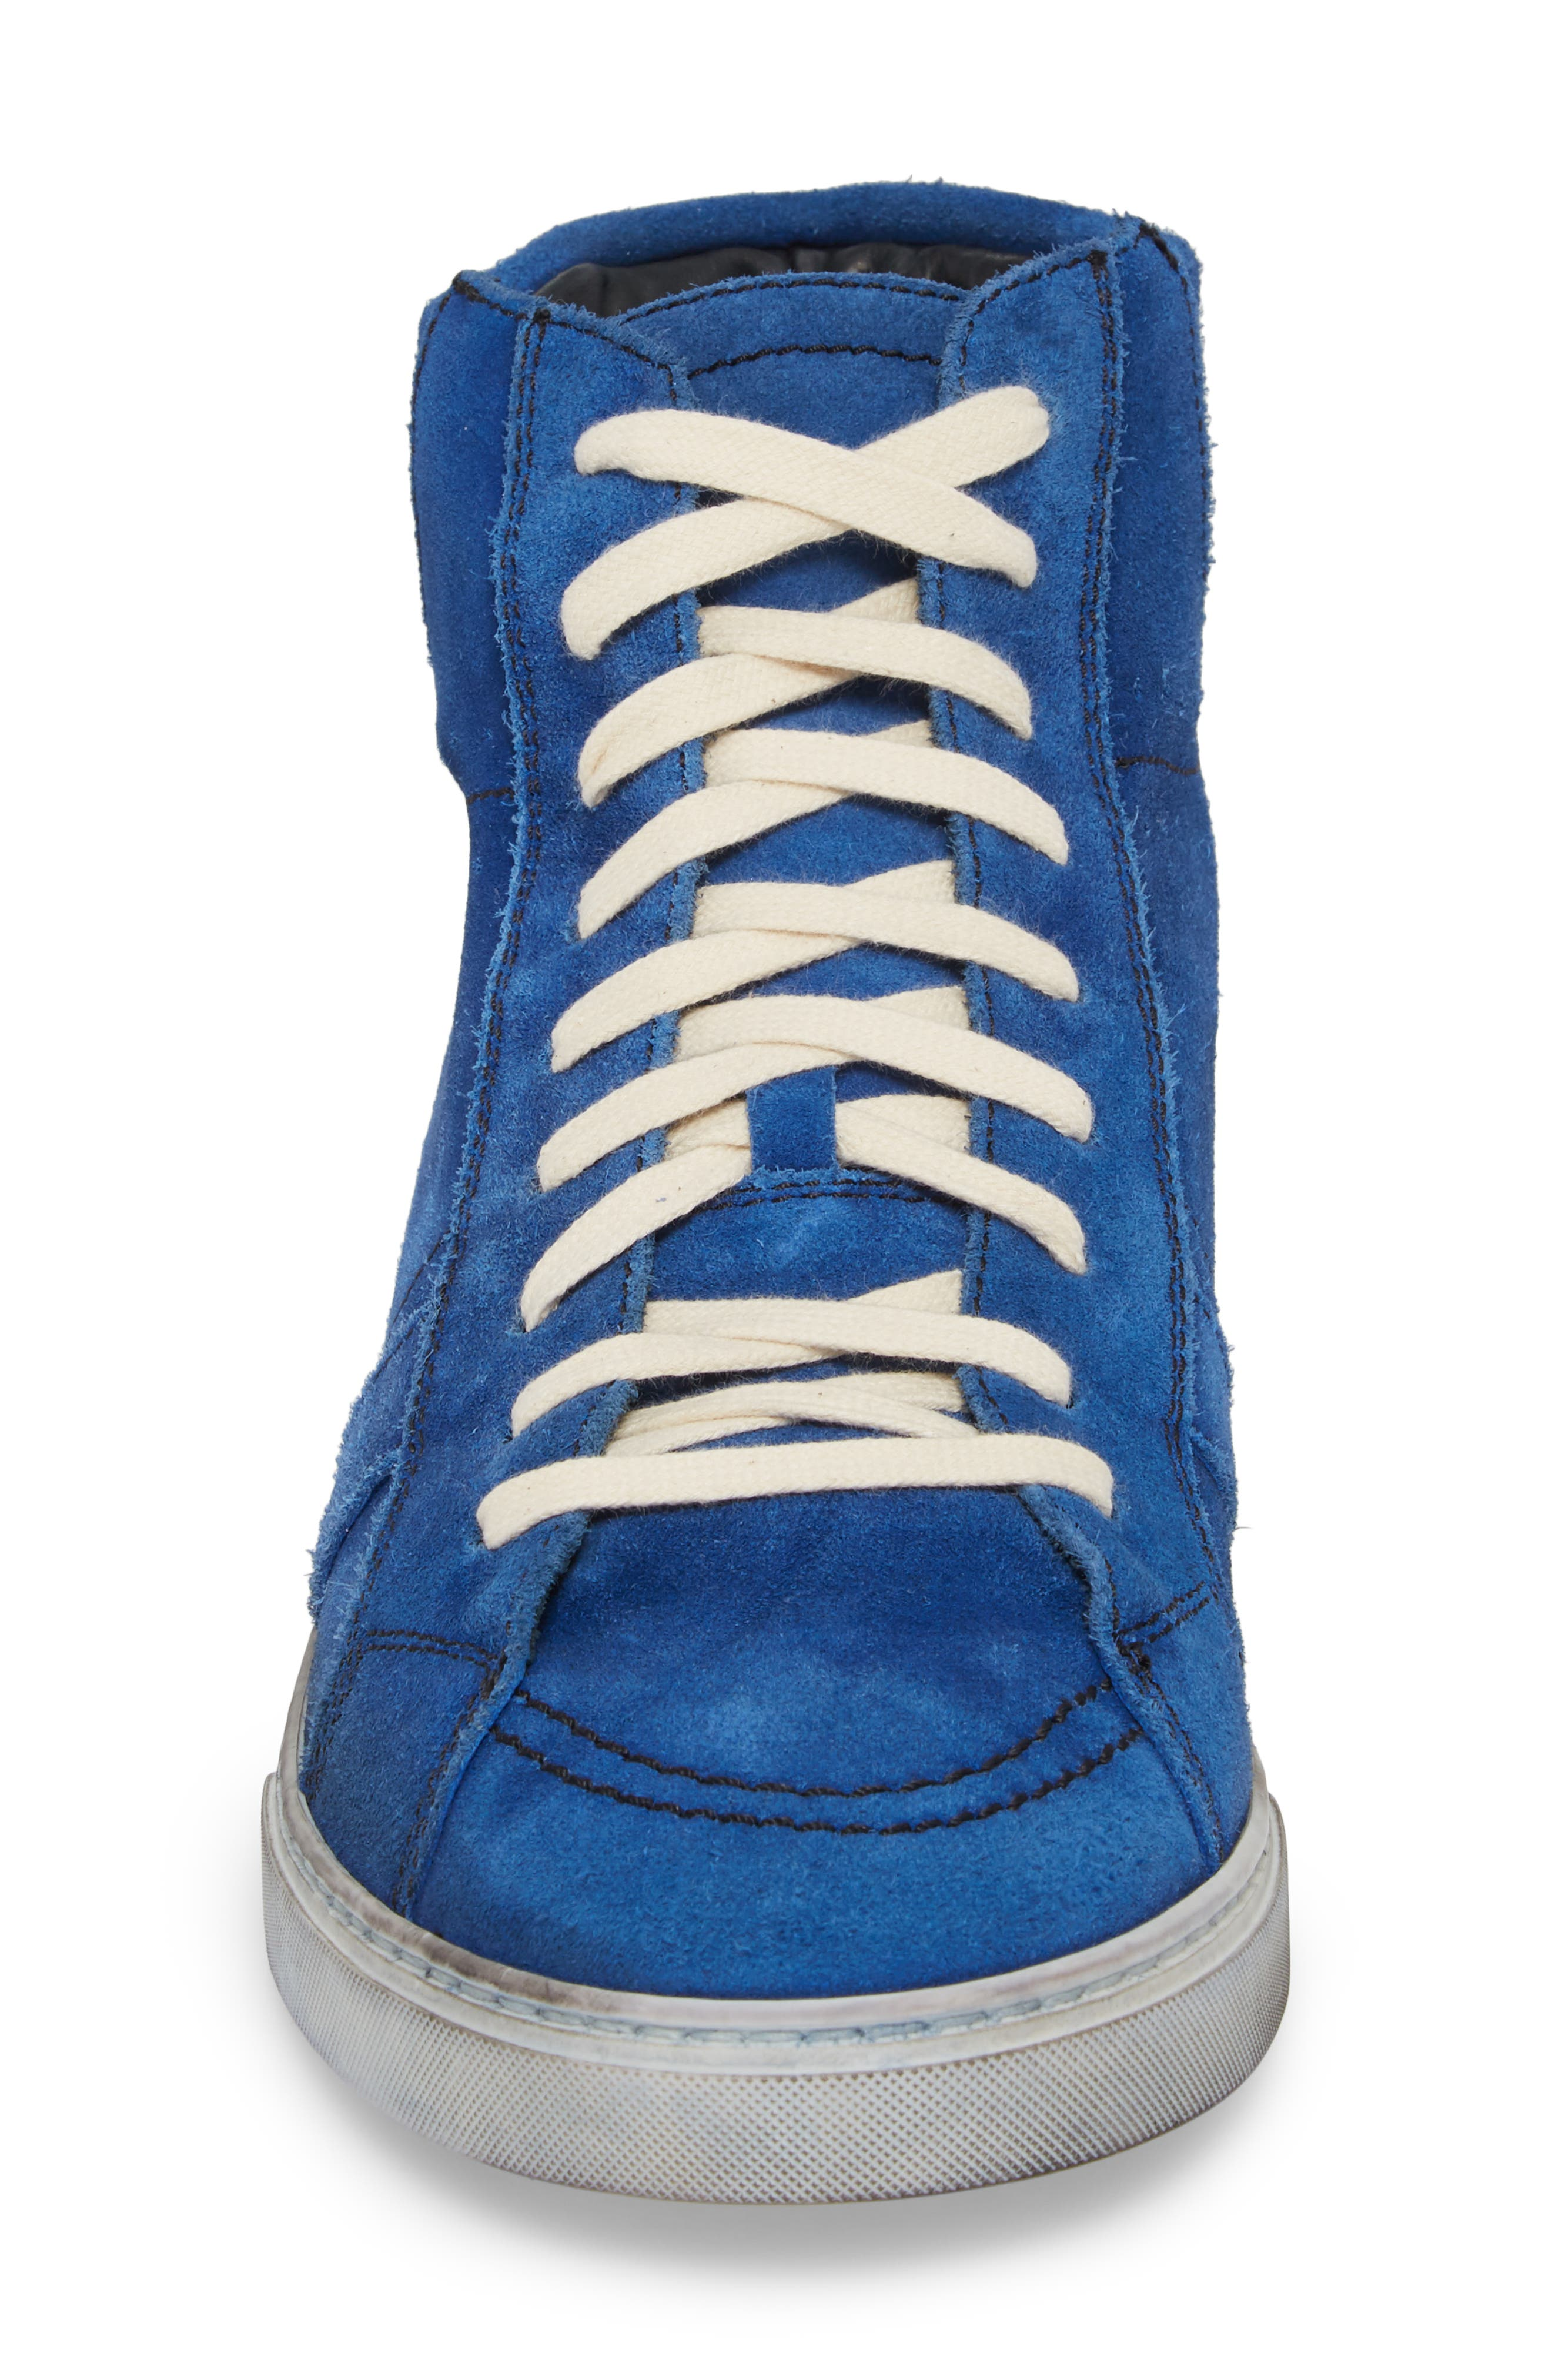 High Top Sneaker,                             Alternate thumbnail 4, color,                             Blue Suede